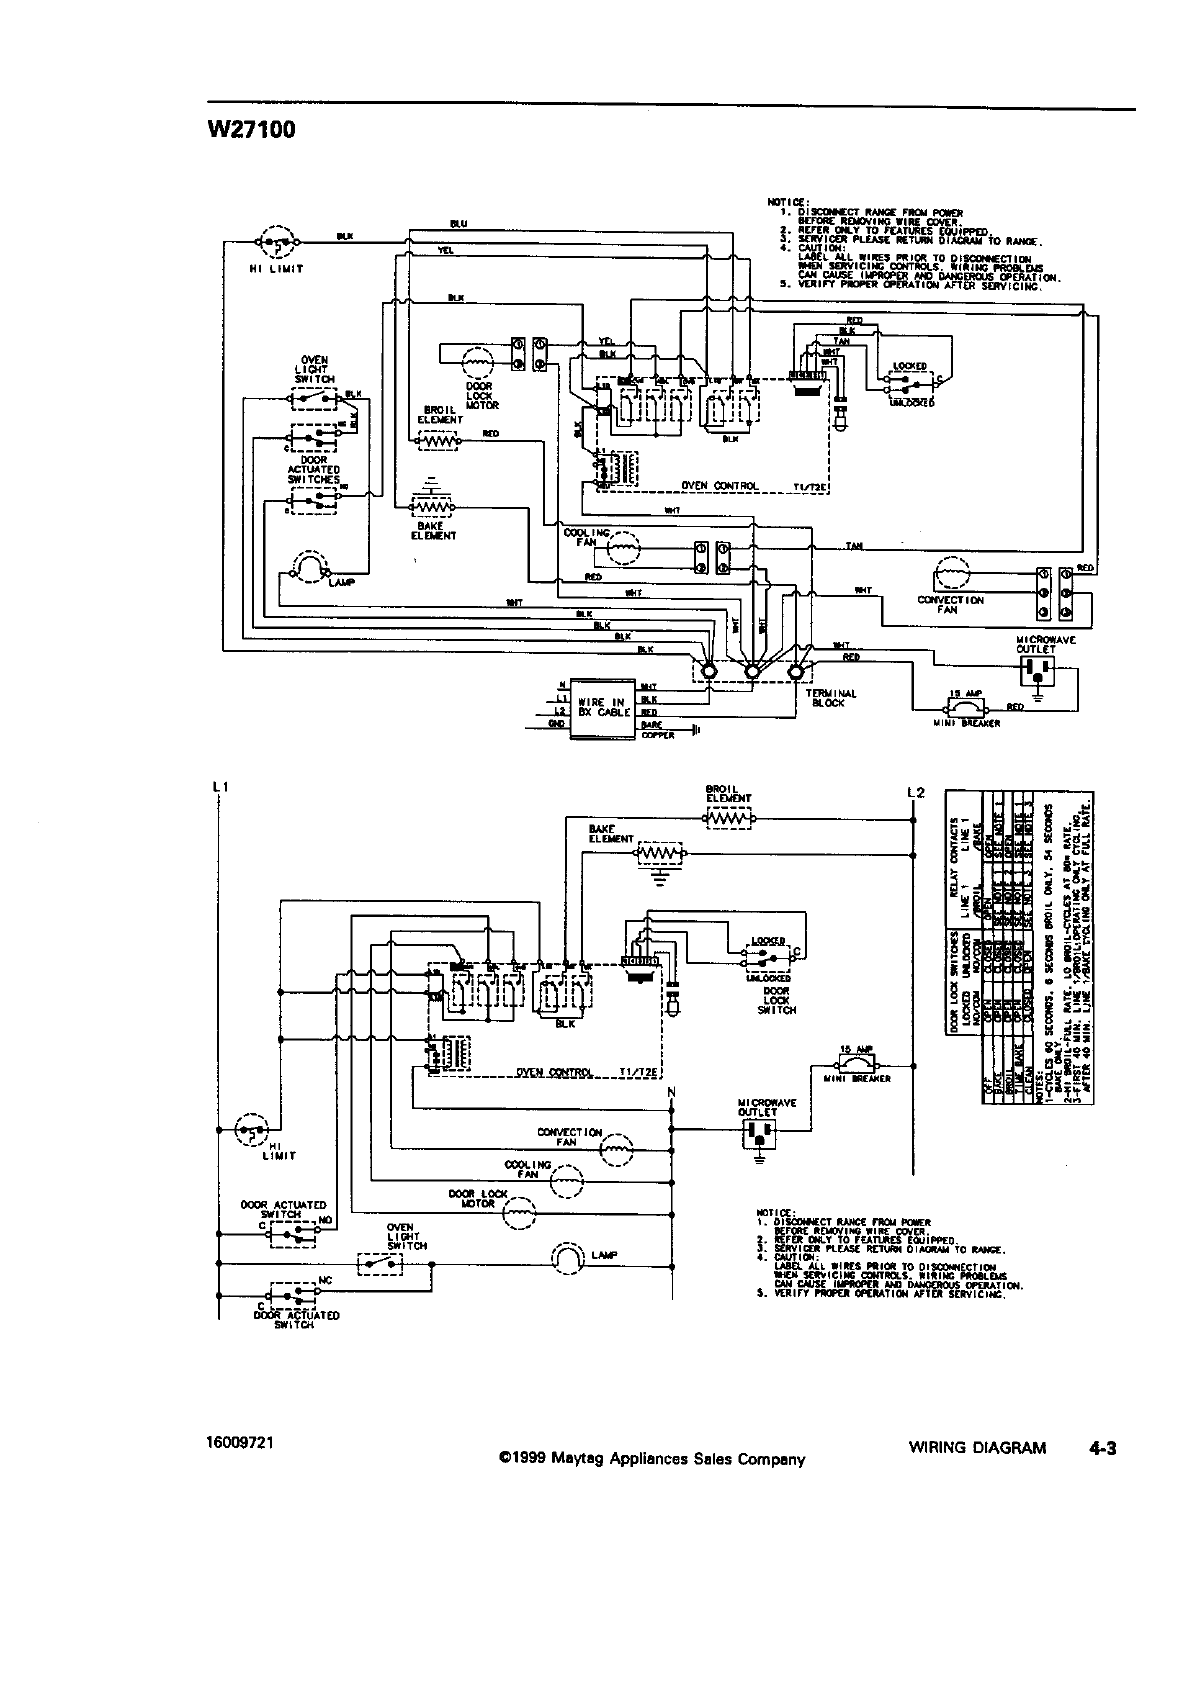 52b2f415 78fa 4259 88c0 be210120d02a bg23 page 35 of jenn air oven w27100 user guide manualsonline com Basic Electrical Wiring Diagrams at edmiracle.co